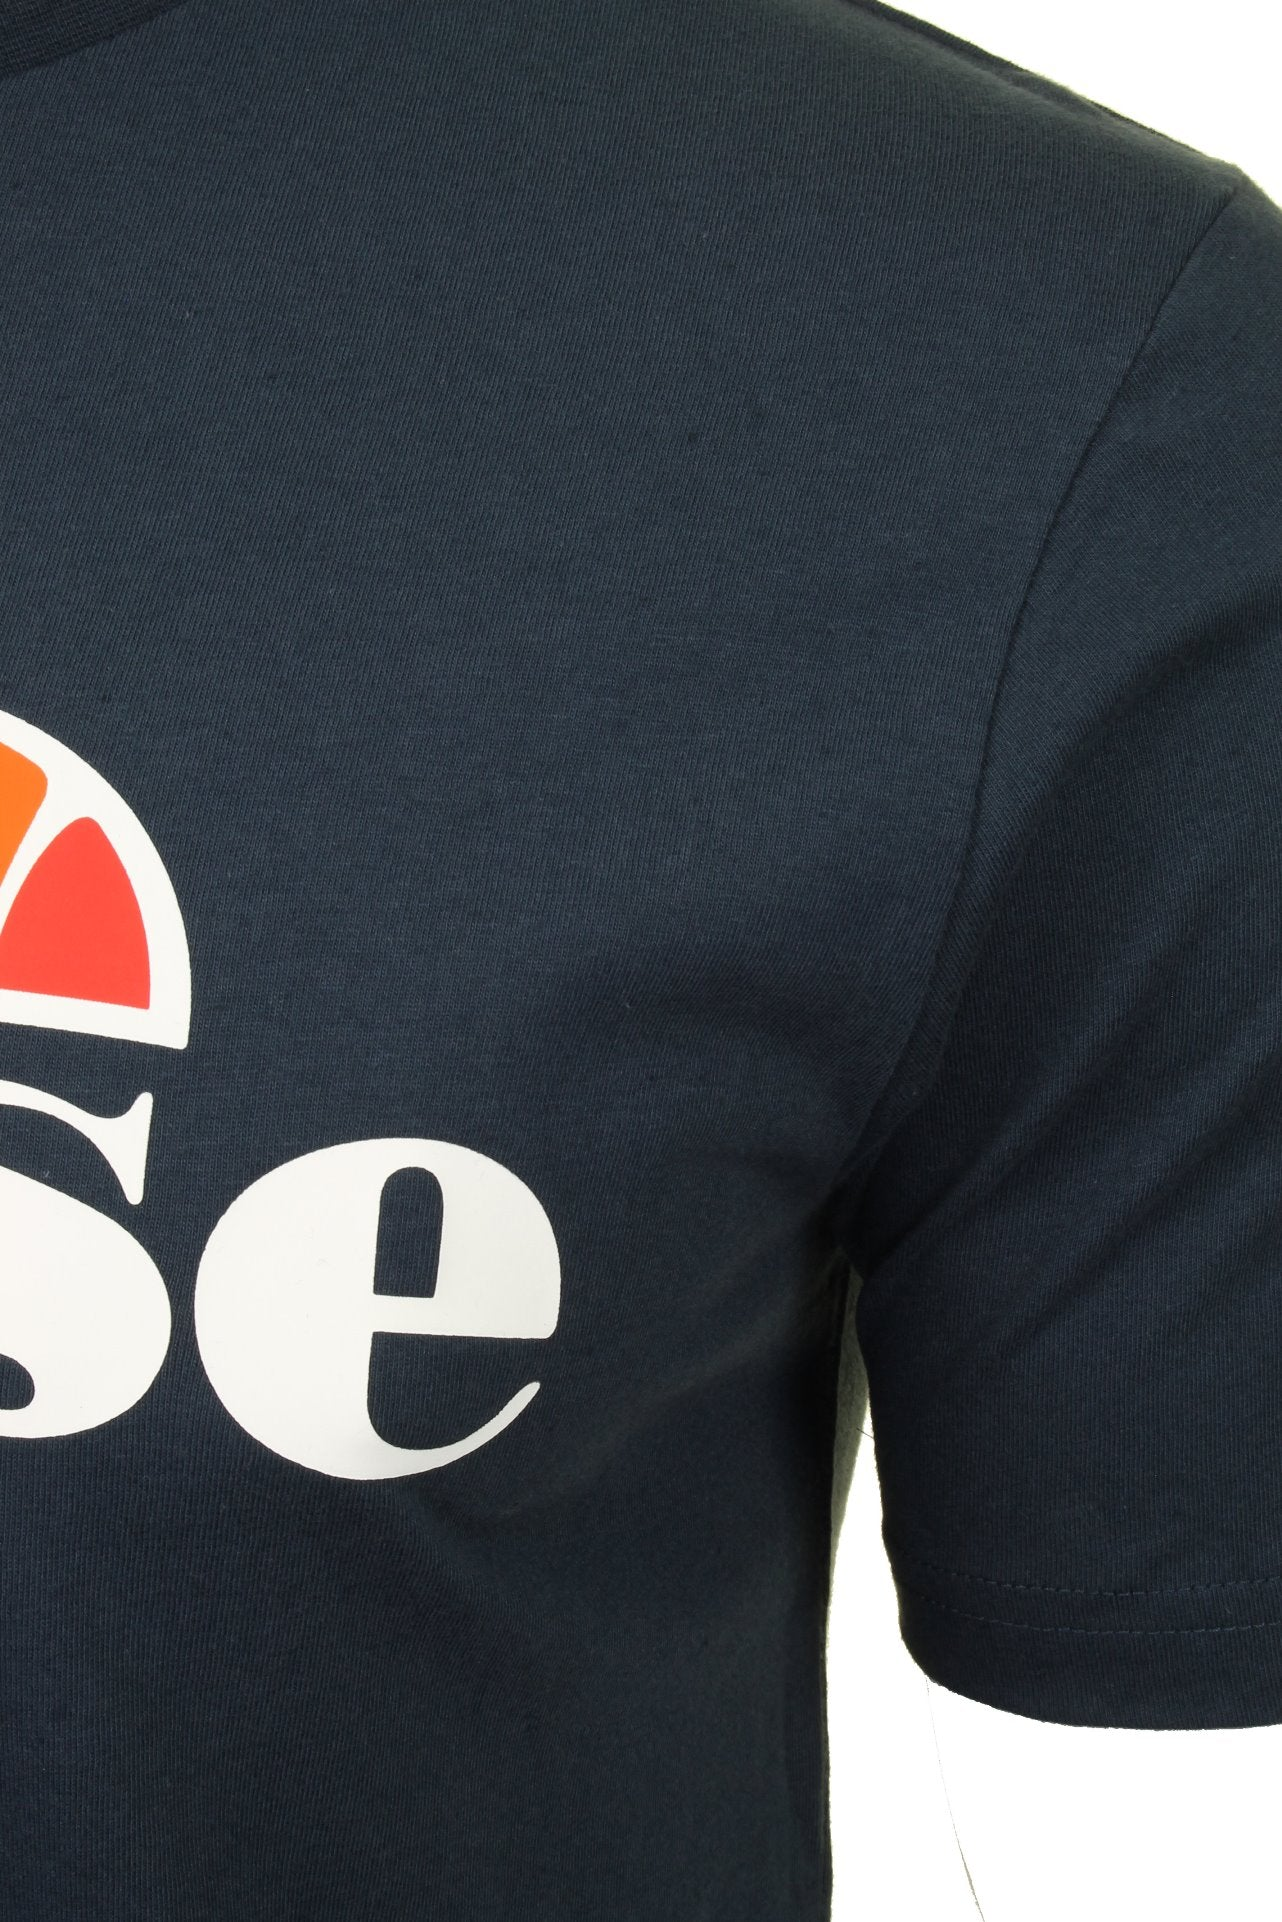 Ellesse Mens Logo Front Crew Neck T-Shirt 'PRADO' - Short Sleeved_02_Shc07405_Navy